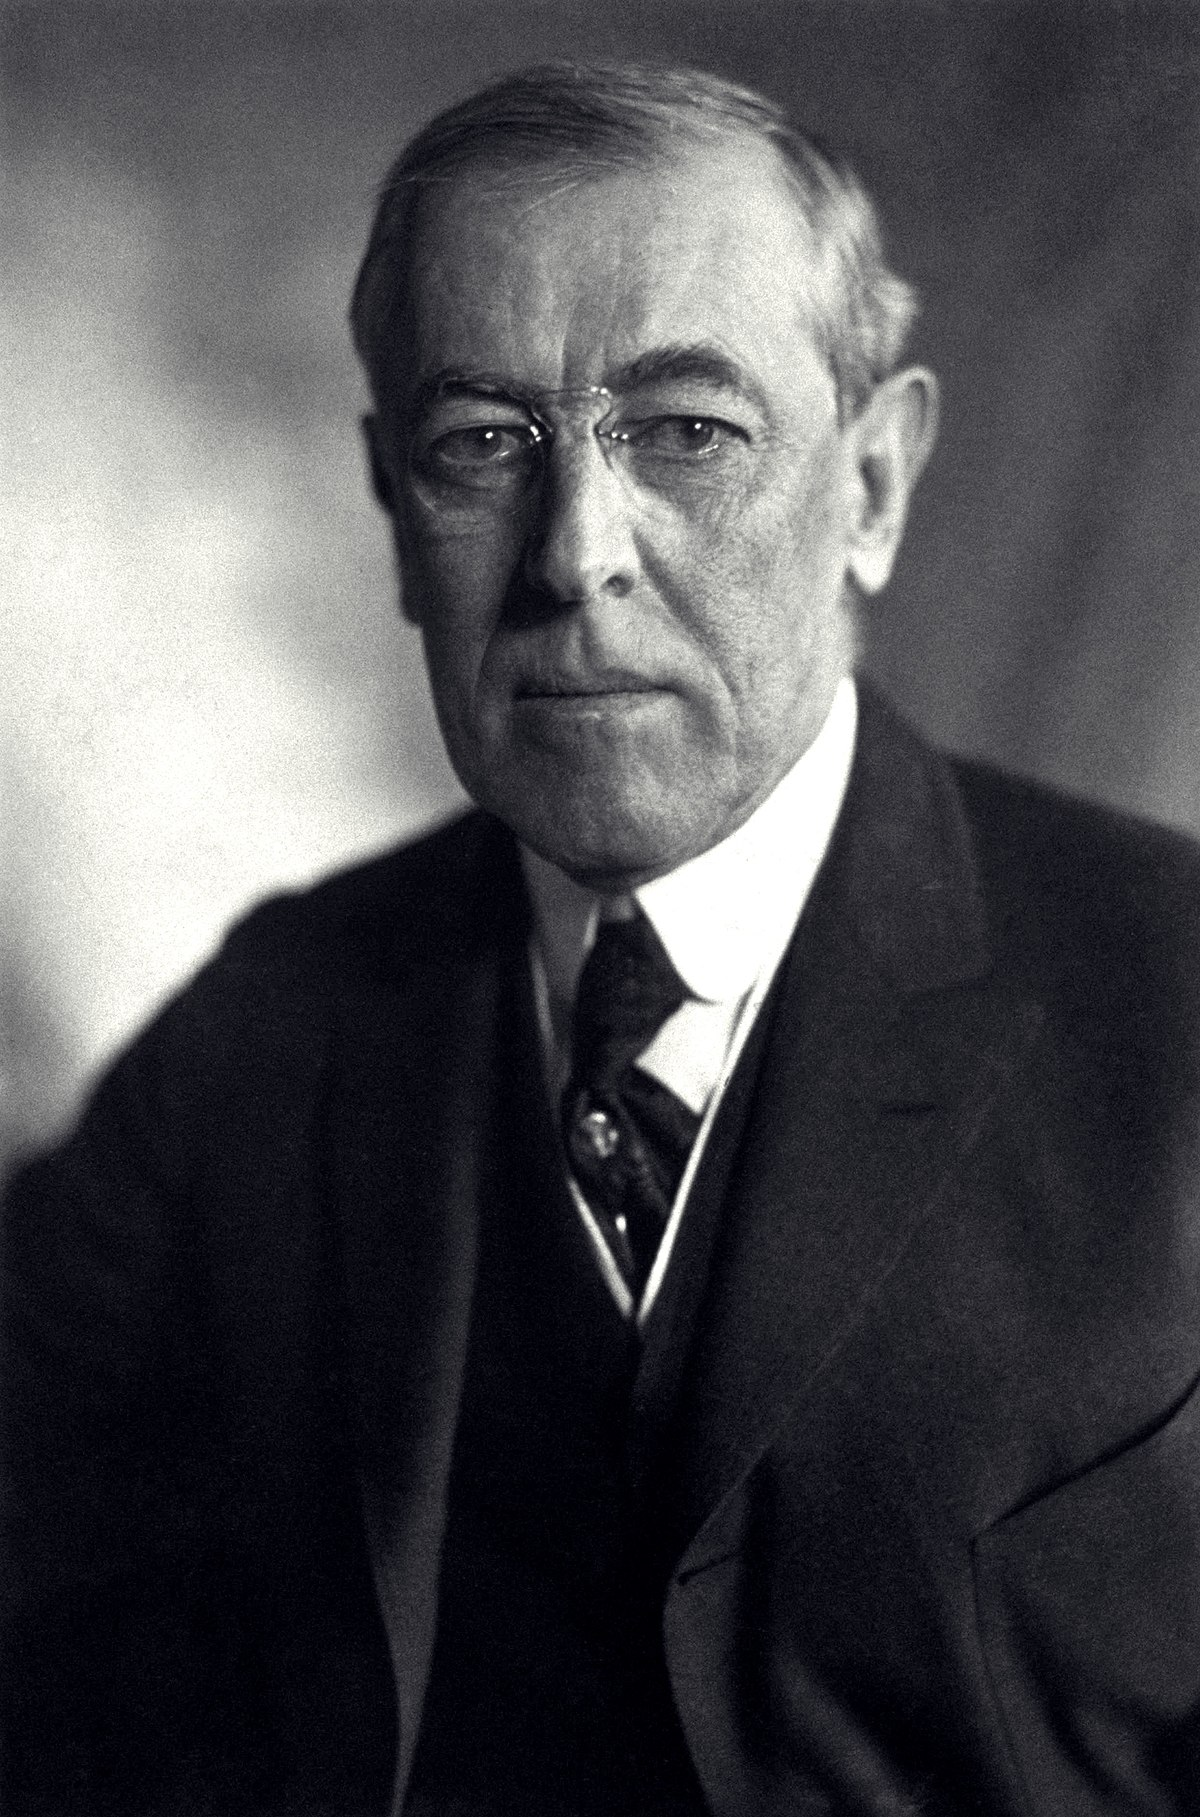 Thomas Woodrow Wilson, Harris & Ewing bw photo portrait, 1919.jpg